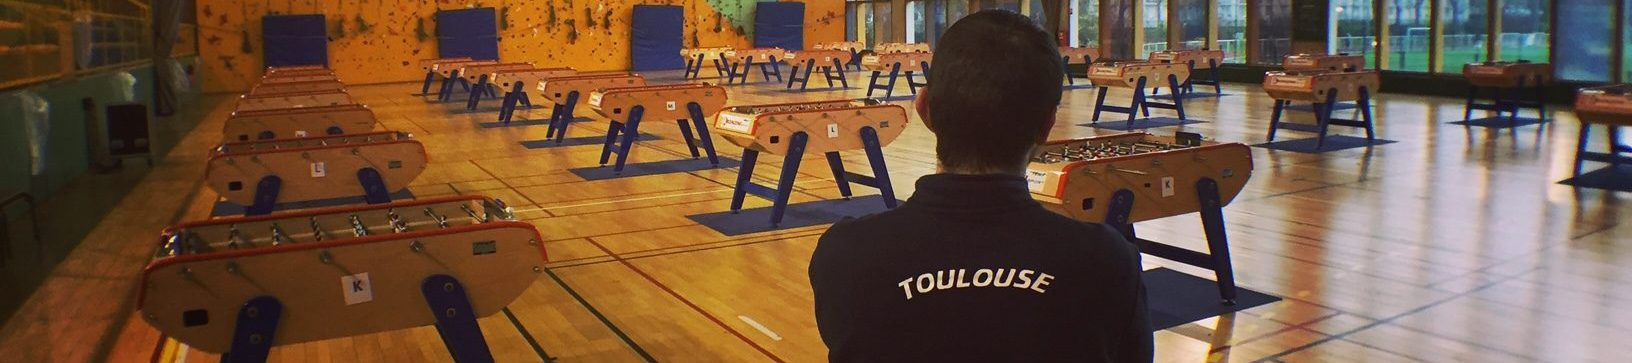 Toulouse Football de Table – BabyFoot Toulouse